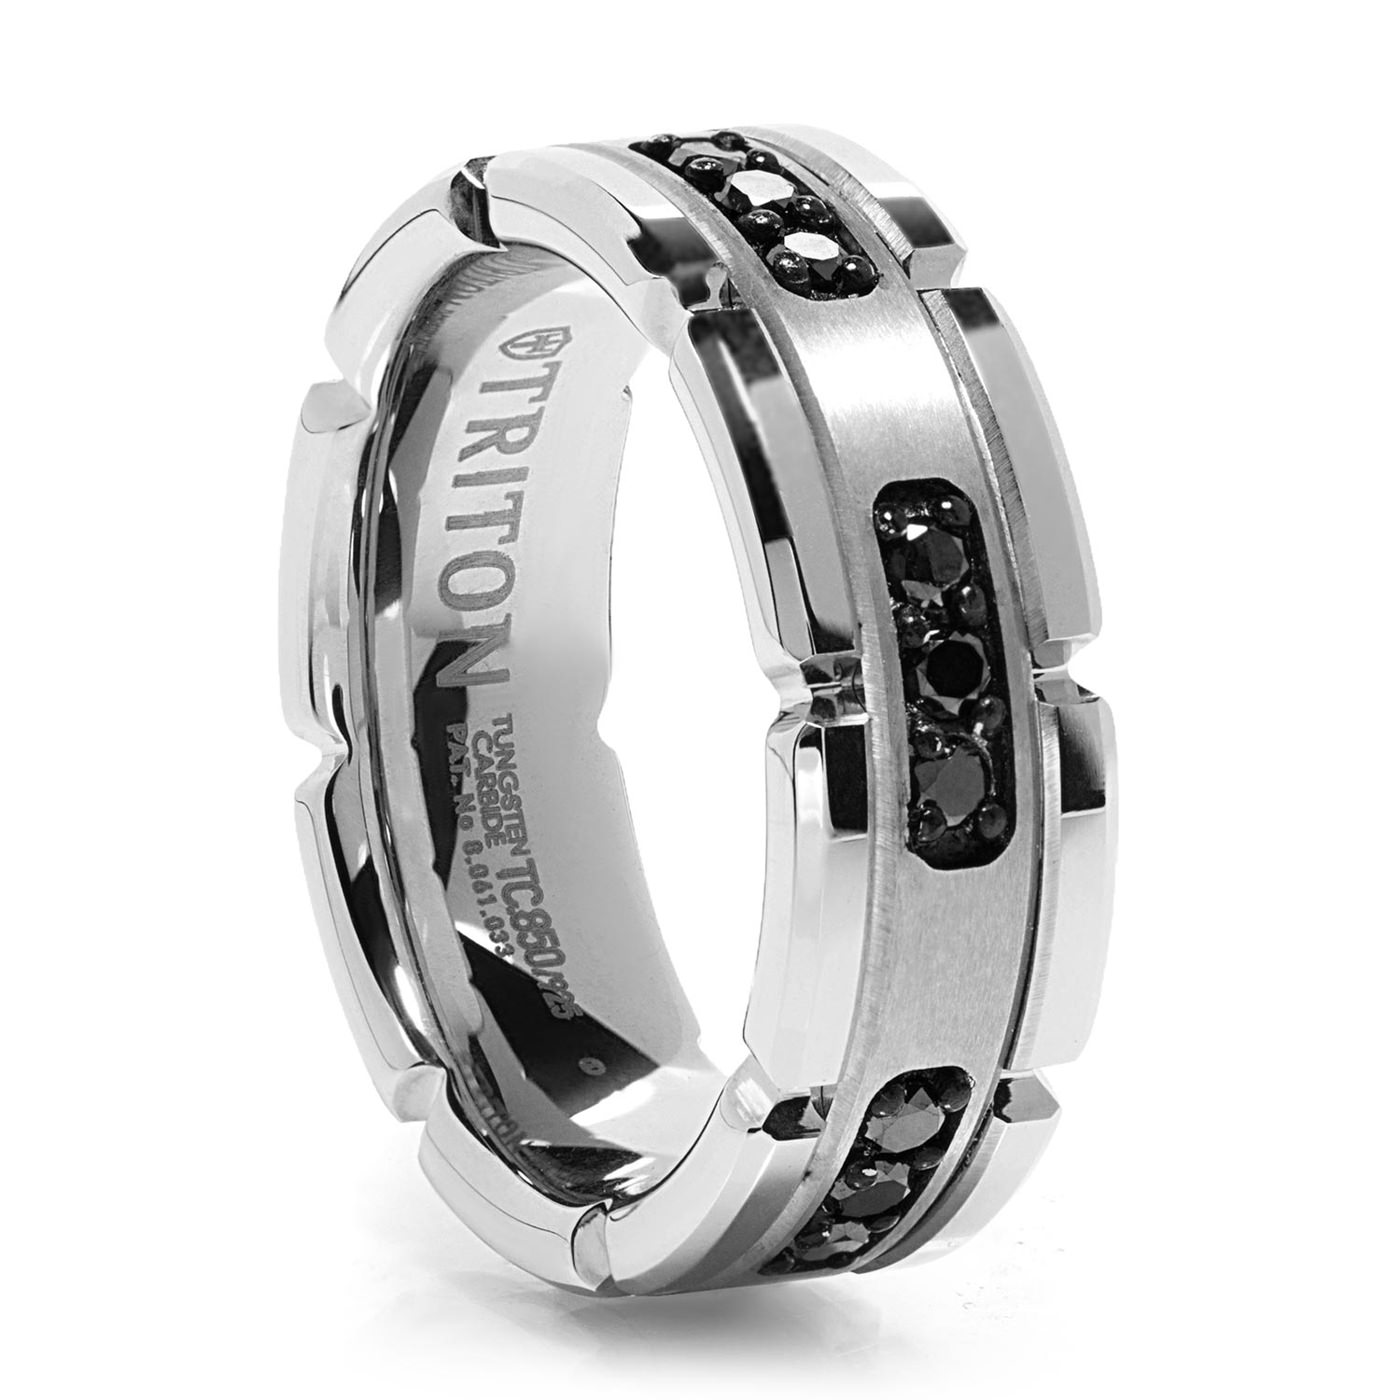 zoom bands zm mv wedding to kaystore triton en black kay hover mens tungsten carbide band